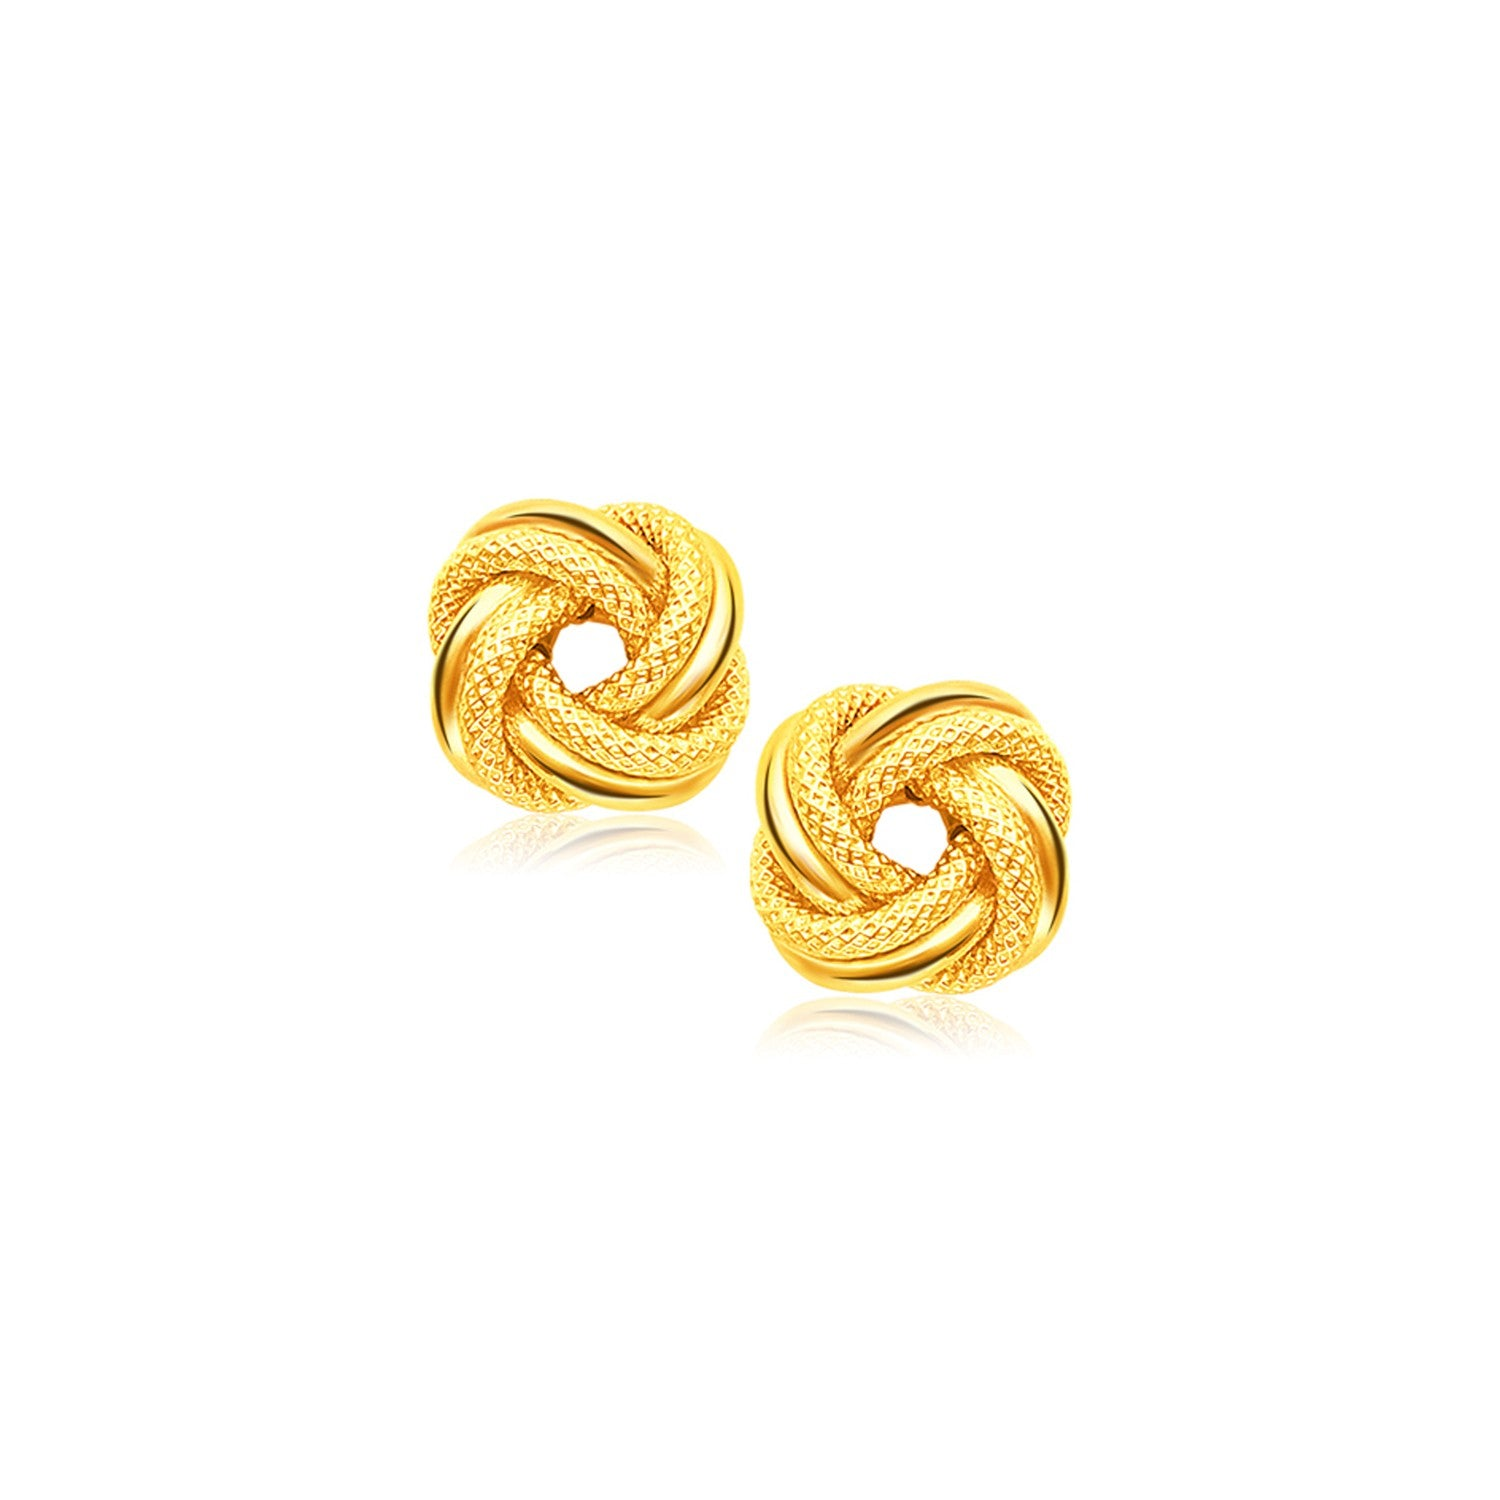 14K Yellow Gold Intertwined Love Knot Stud Earrings